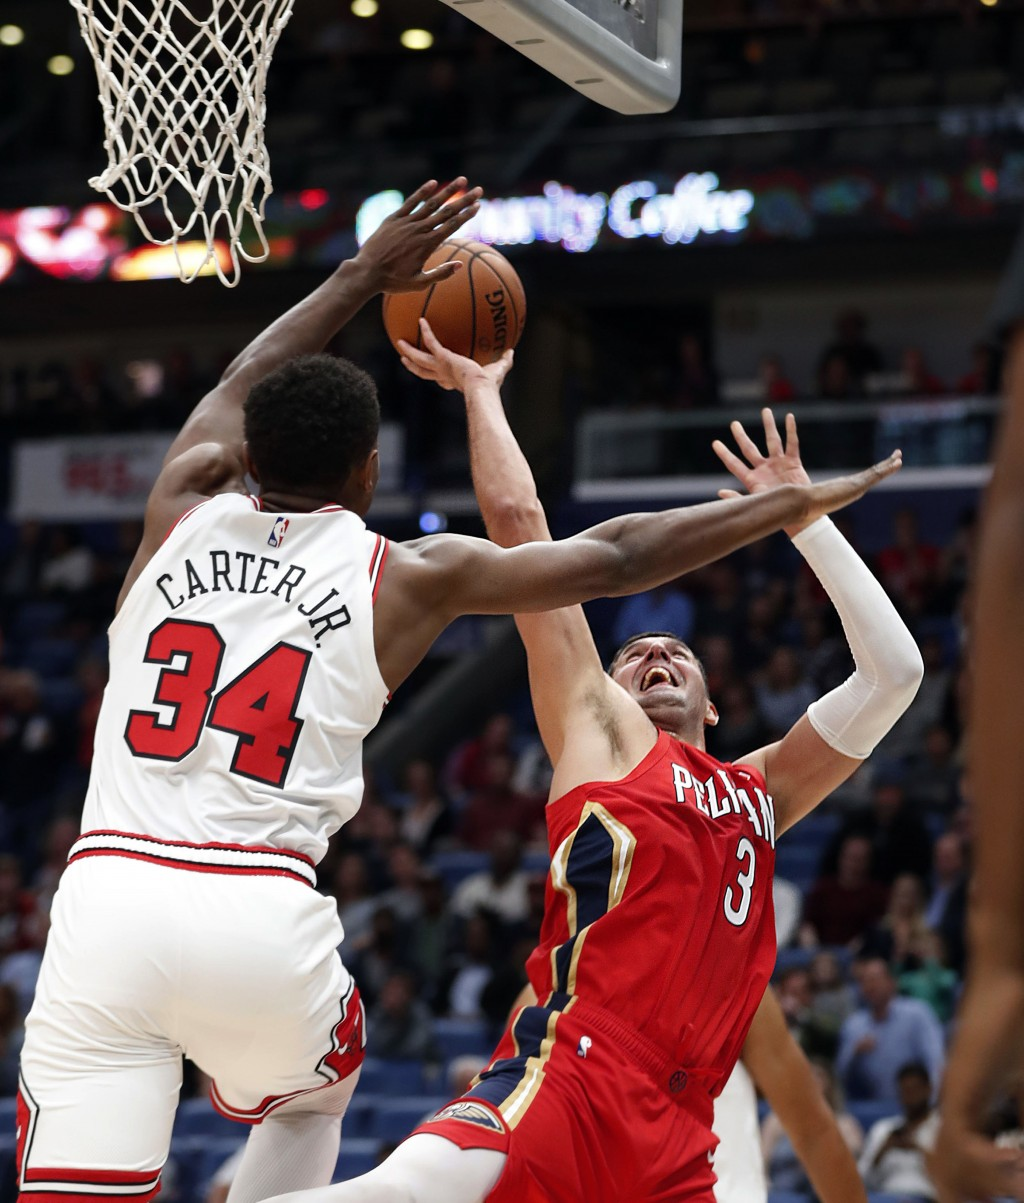 New Orleans Pelicans forward Nikola Mirotic (3) shoots against Chicago Bulls forward Wendell Carter Jr. (34) during the first half of an NBA basketbal